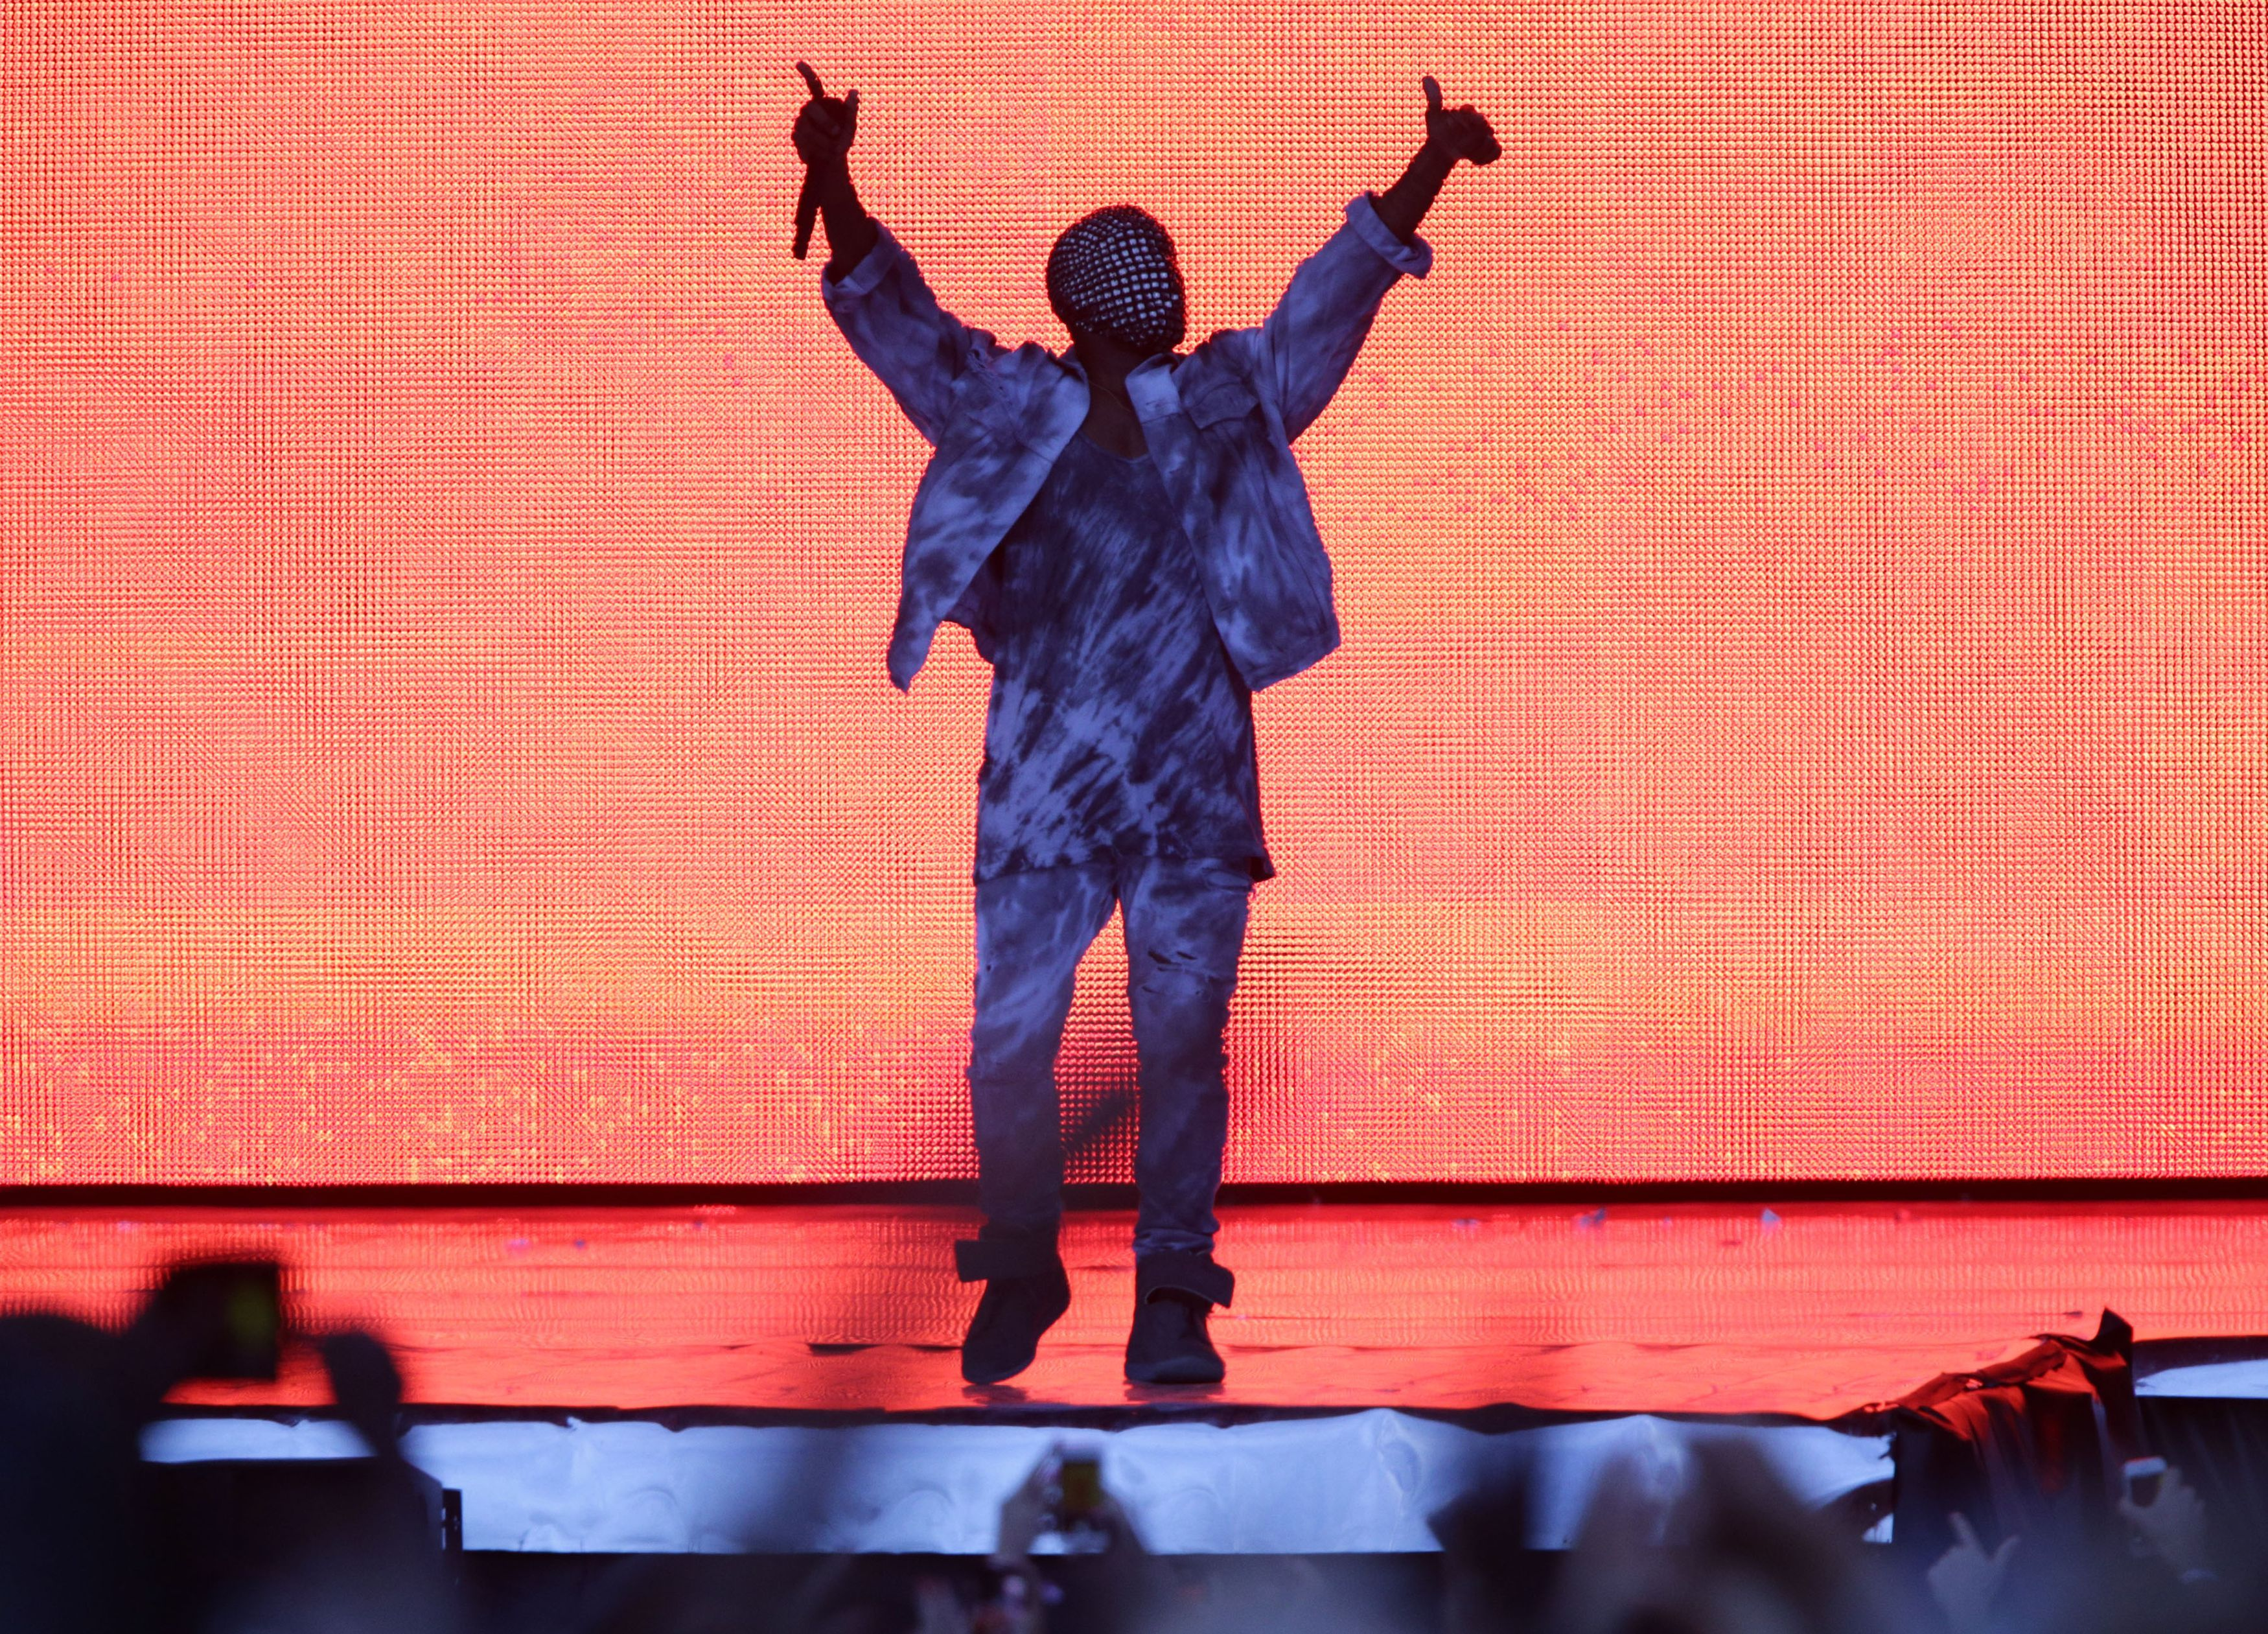 Kanye West performing at the Wireless Festival.